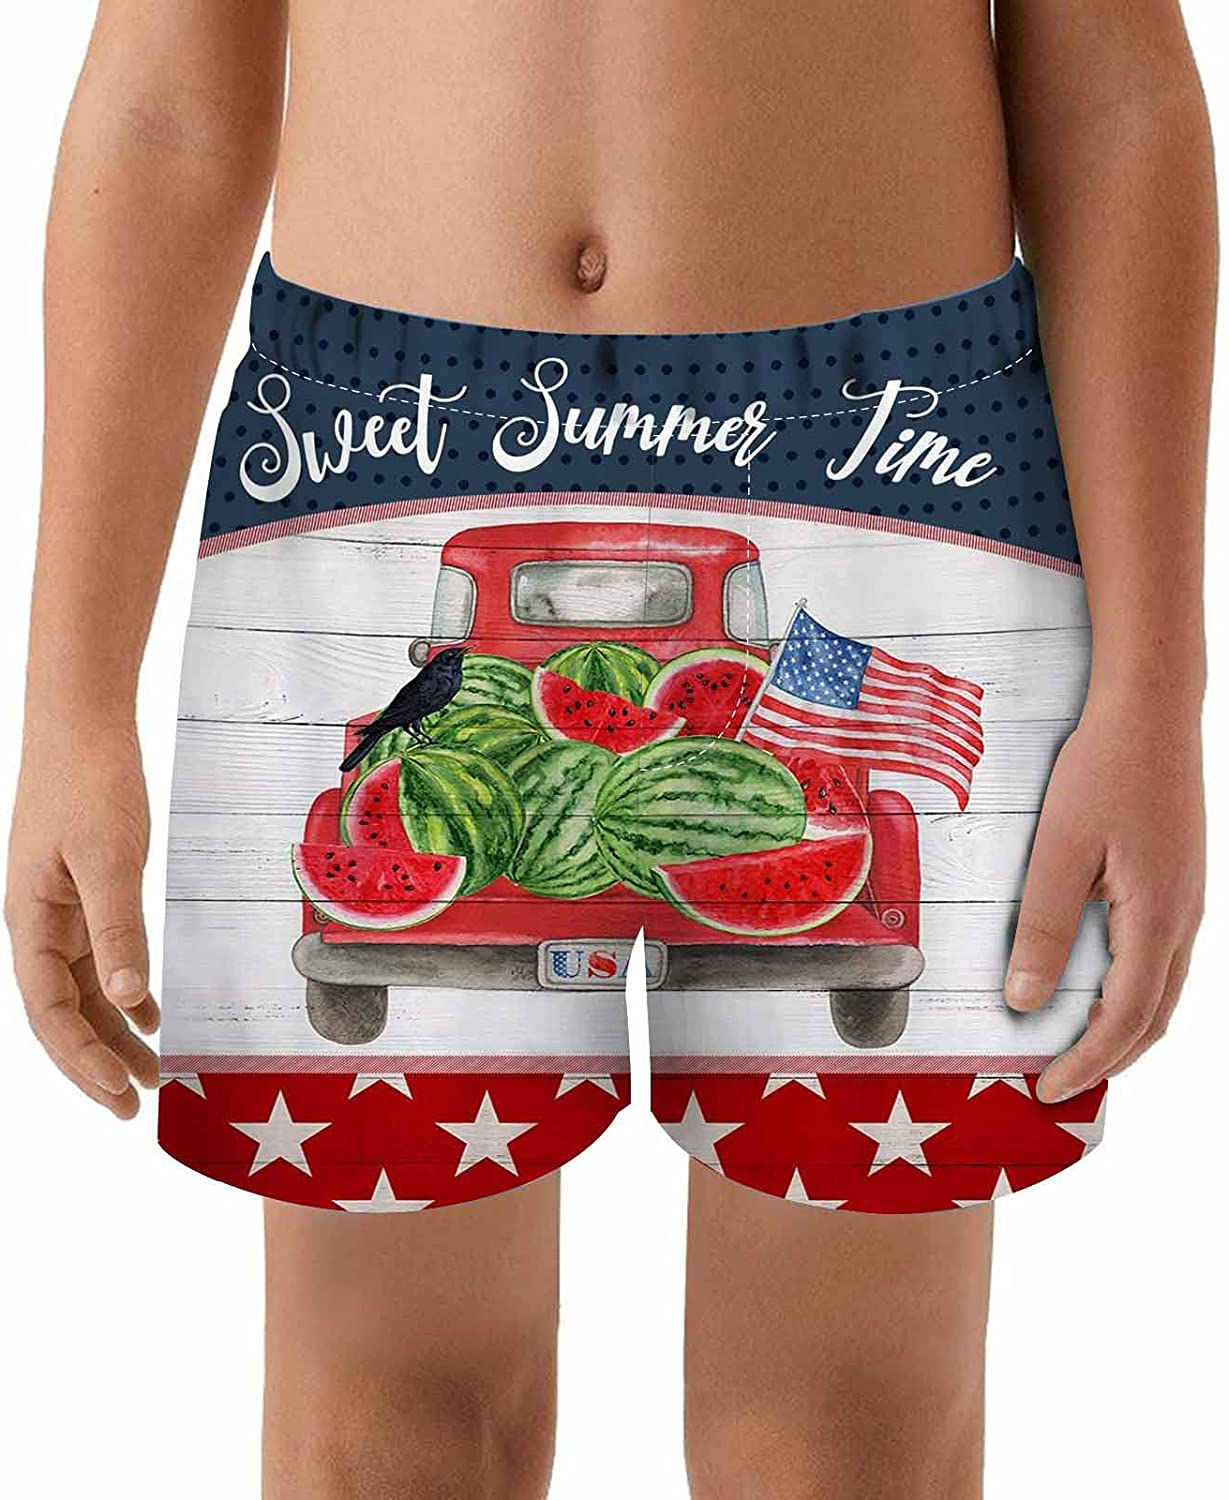 WONDERTIFY Sweet Summer Time Kids Swim Trunks Watermelon On Rustic Red Truck Car American Flag Independence Toddler Beach Shorts Quick Dry Bathing Suit Swimsuit Boy Swimwear Boardshort 5/6T